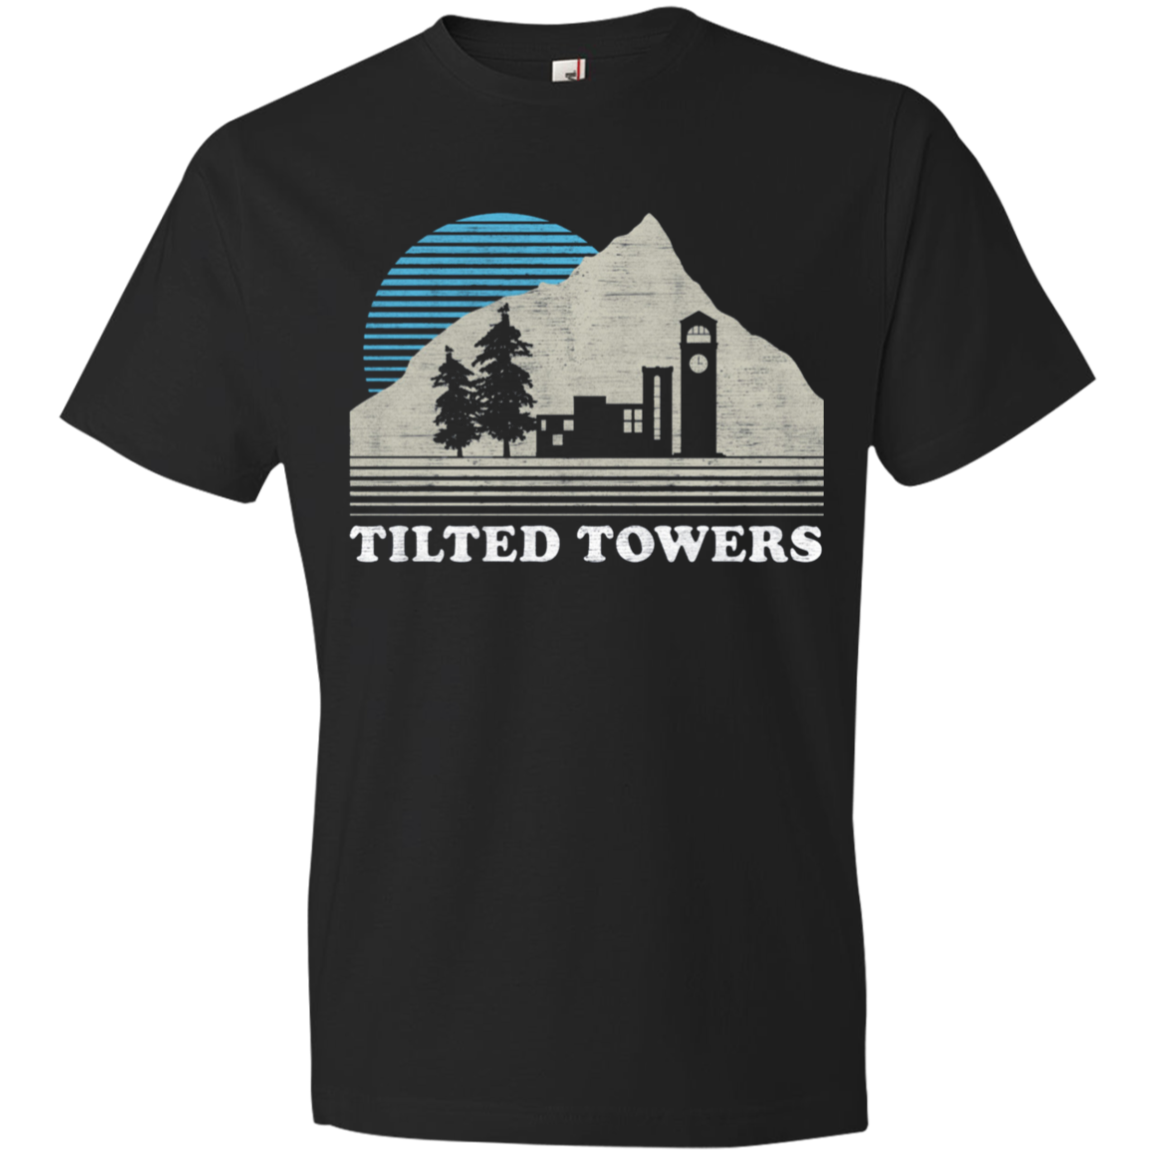 Fortnite Tilted Towers Graphic